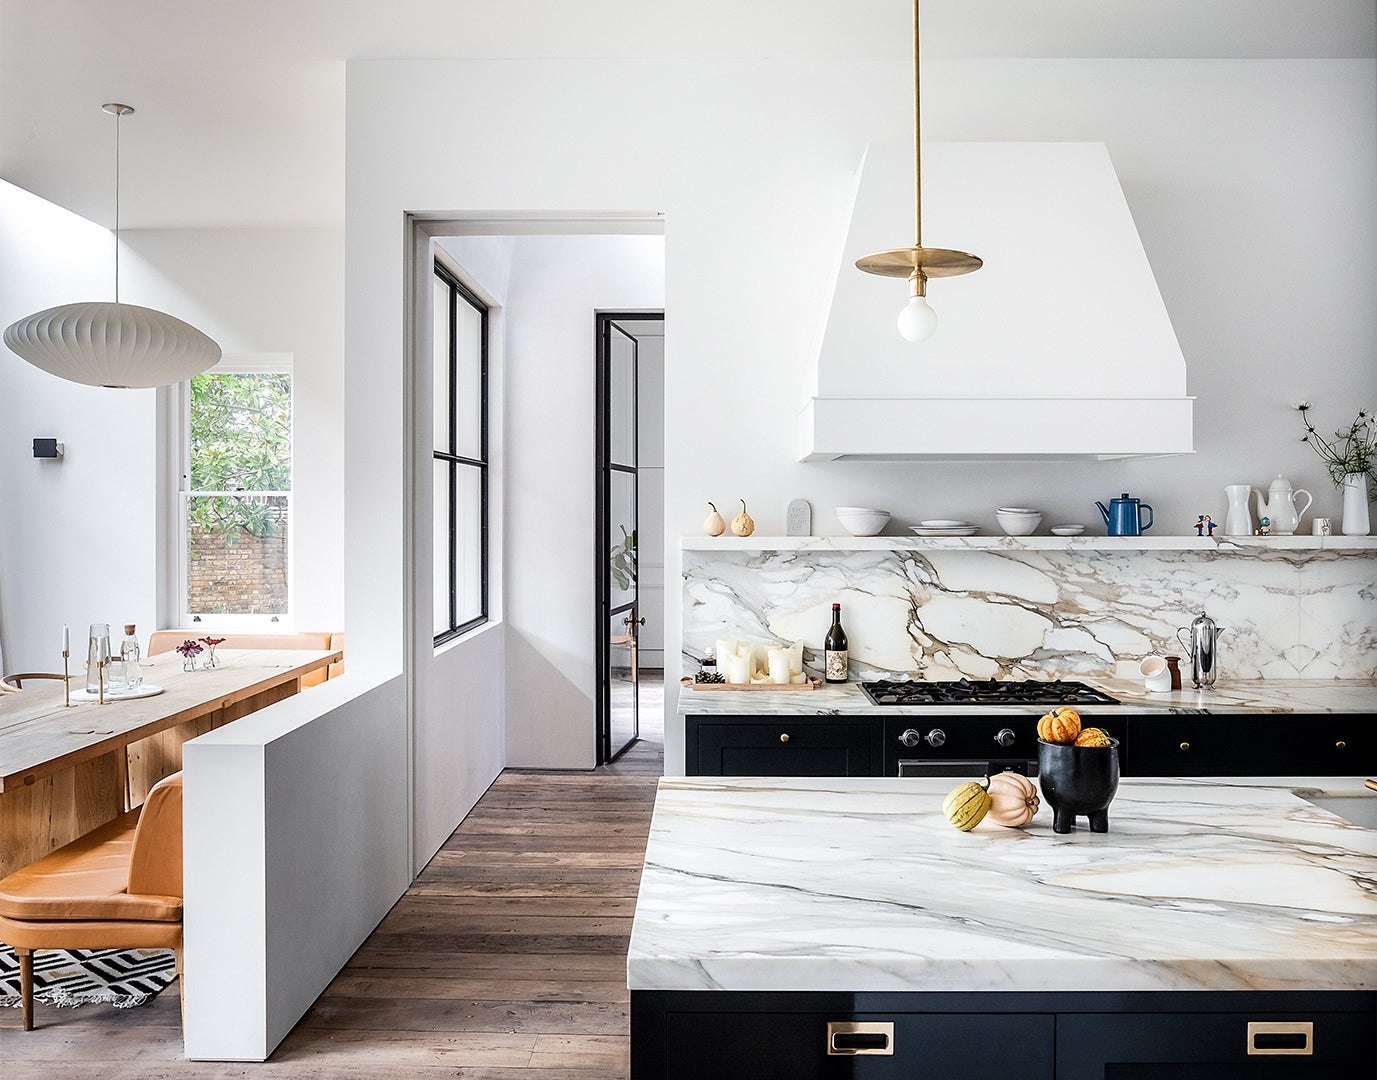 kitchen wiht half wall separating dining area